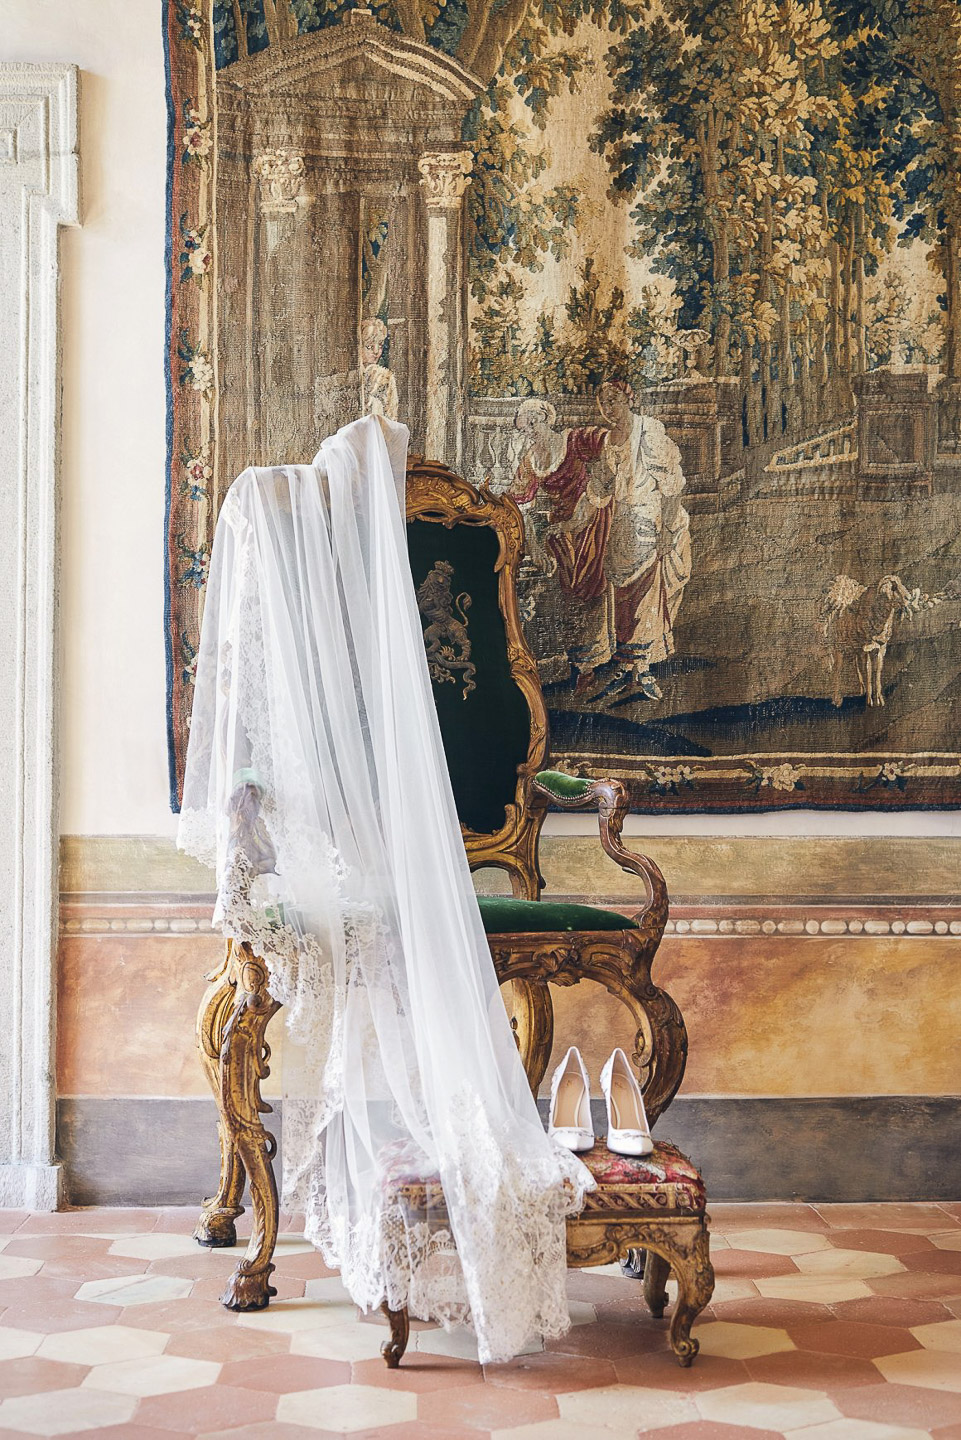 Villa Balbiano luxury property Lake Como Milan Italy exclusive private rent rental destination weddings events cememony elopement engagement antique Italian throne in the gallery first floor 1